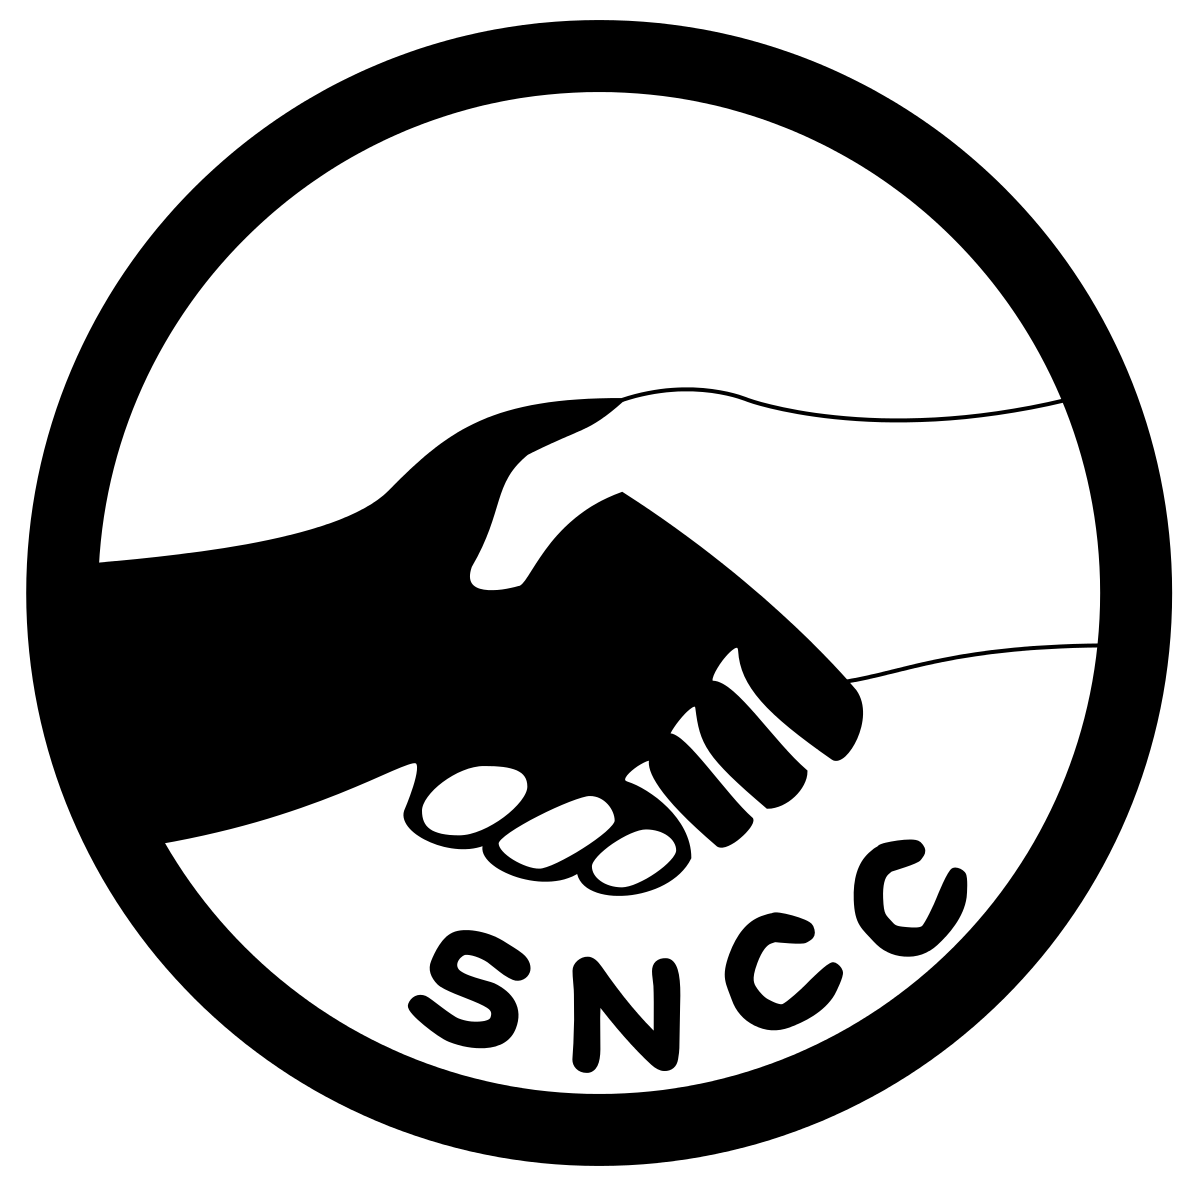 6 god hands png. Student nonviolent coordinating committee